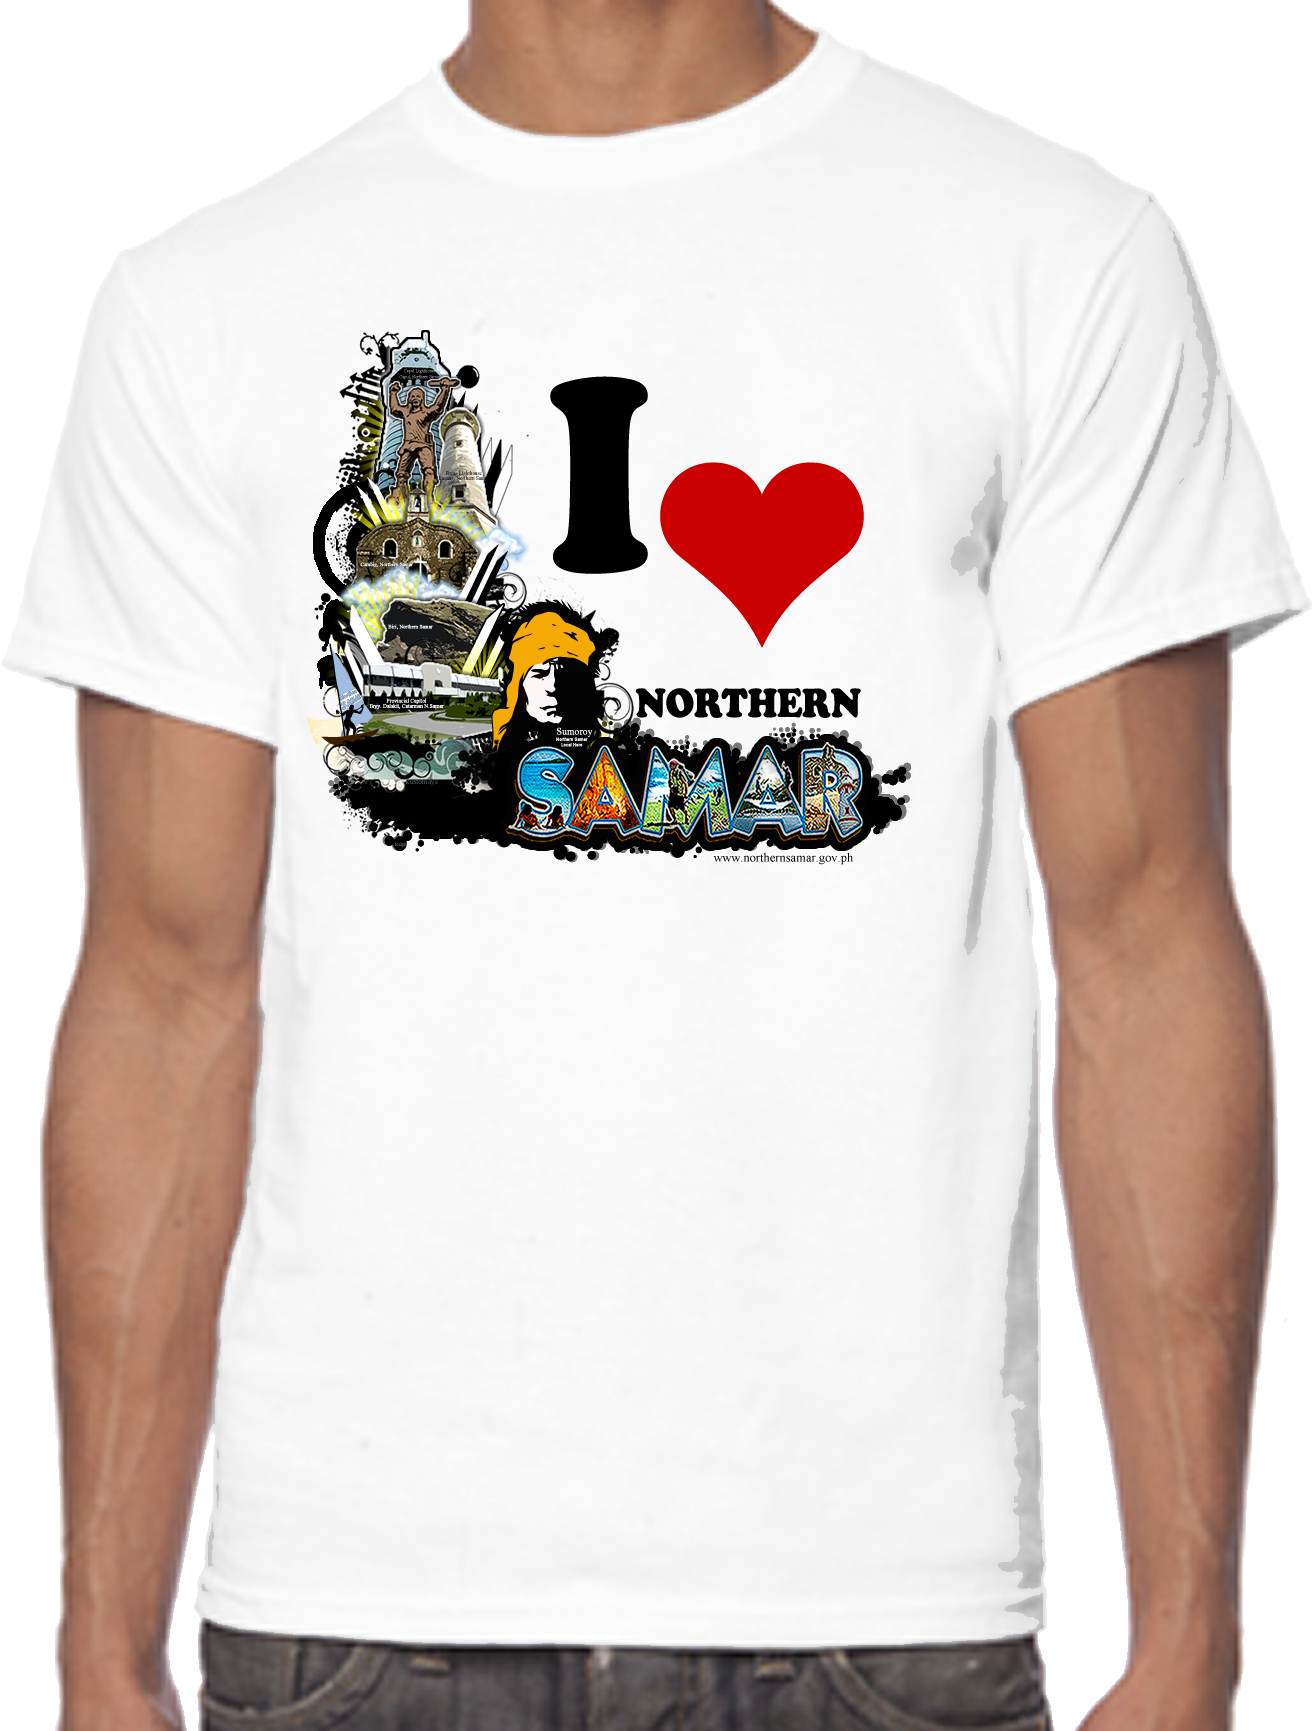 https://kustomays.com/wp-content/uploads/2013/05/Northern-Samar-Shirt12.png